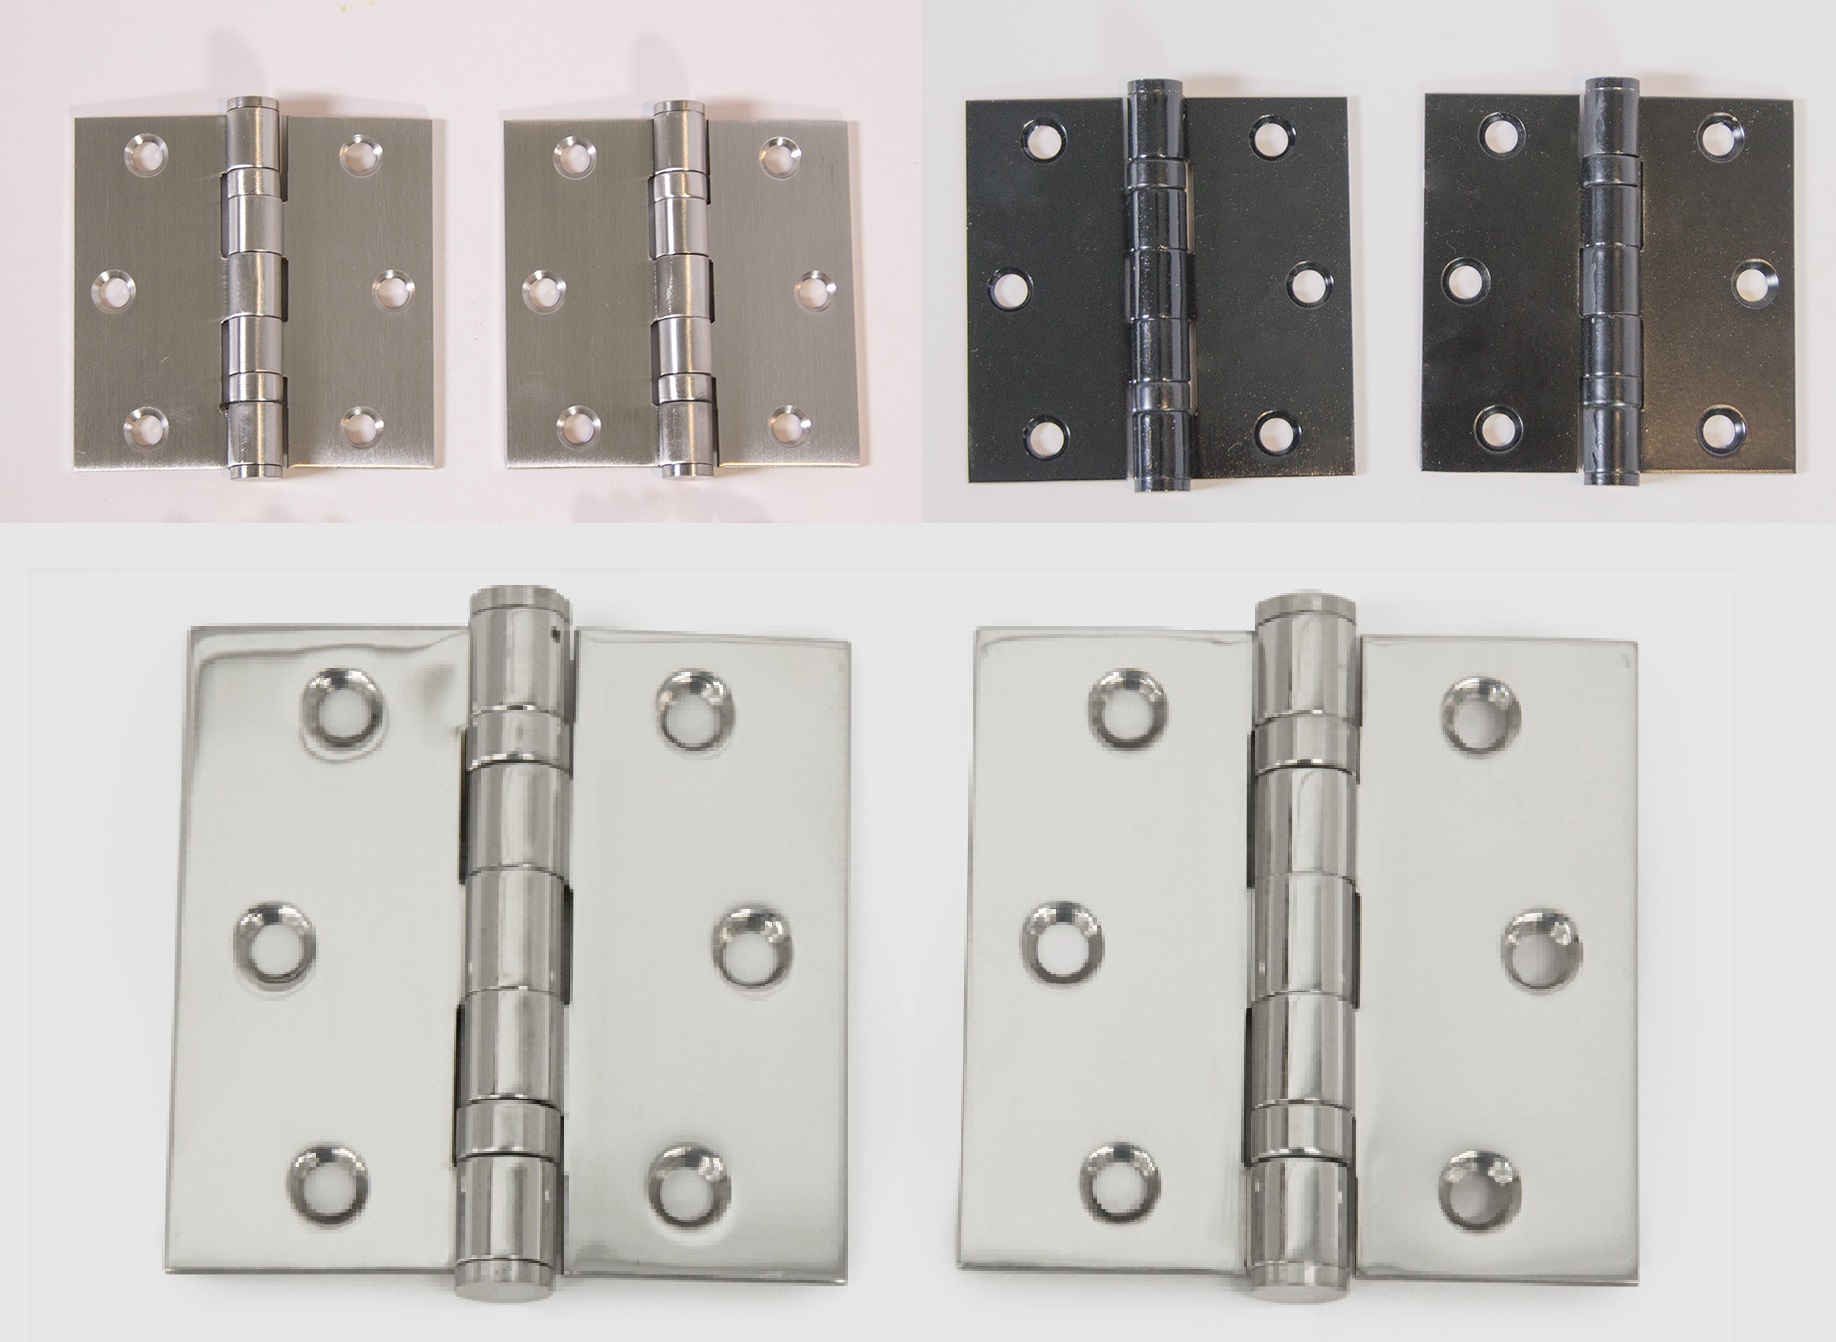 Ball Bearing Door Hinge Square Cut Out 2 Pack In Various Sizes 3 3 1 2 4 Toronto Door Hardware Door Levers And Door Handles